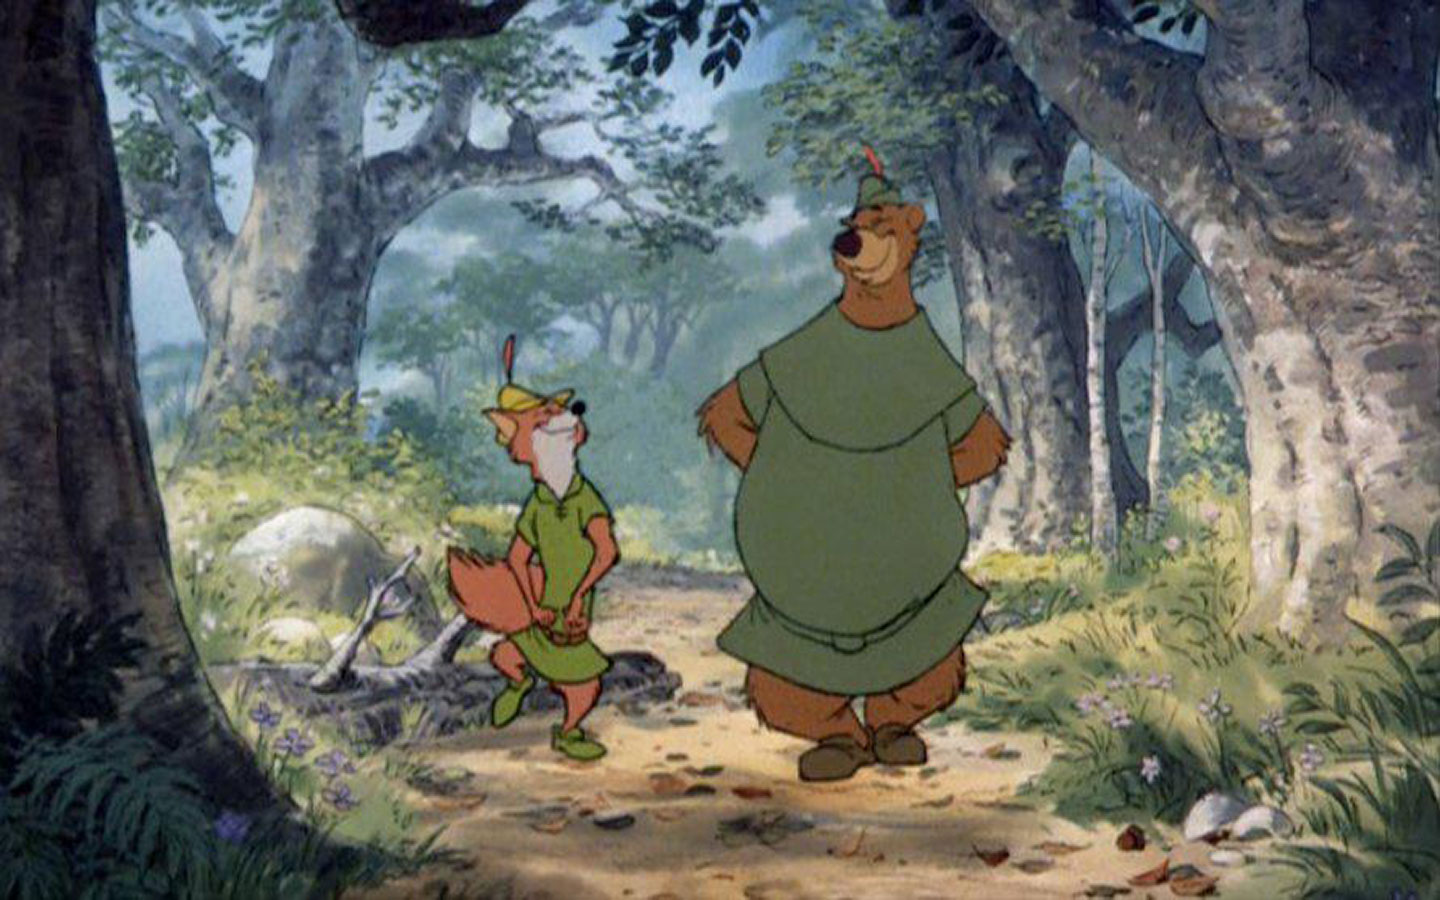 Robin hood wallpaper wallpapersafari - Hood cartoon wallpaper ...